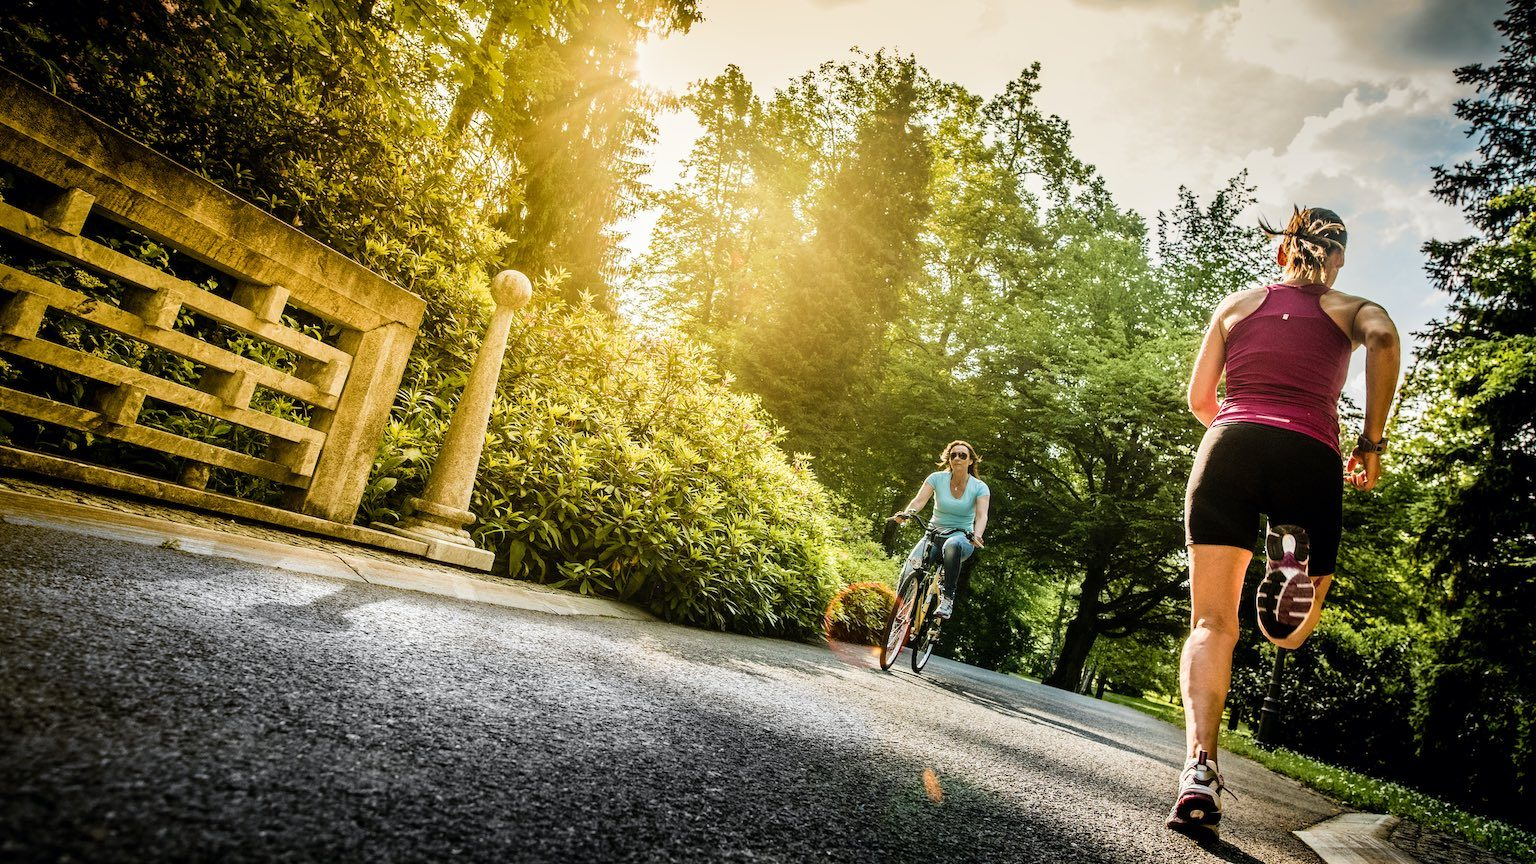 Photo of a female jogger in the park, with sun flare in the background.